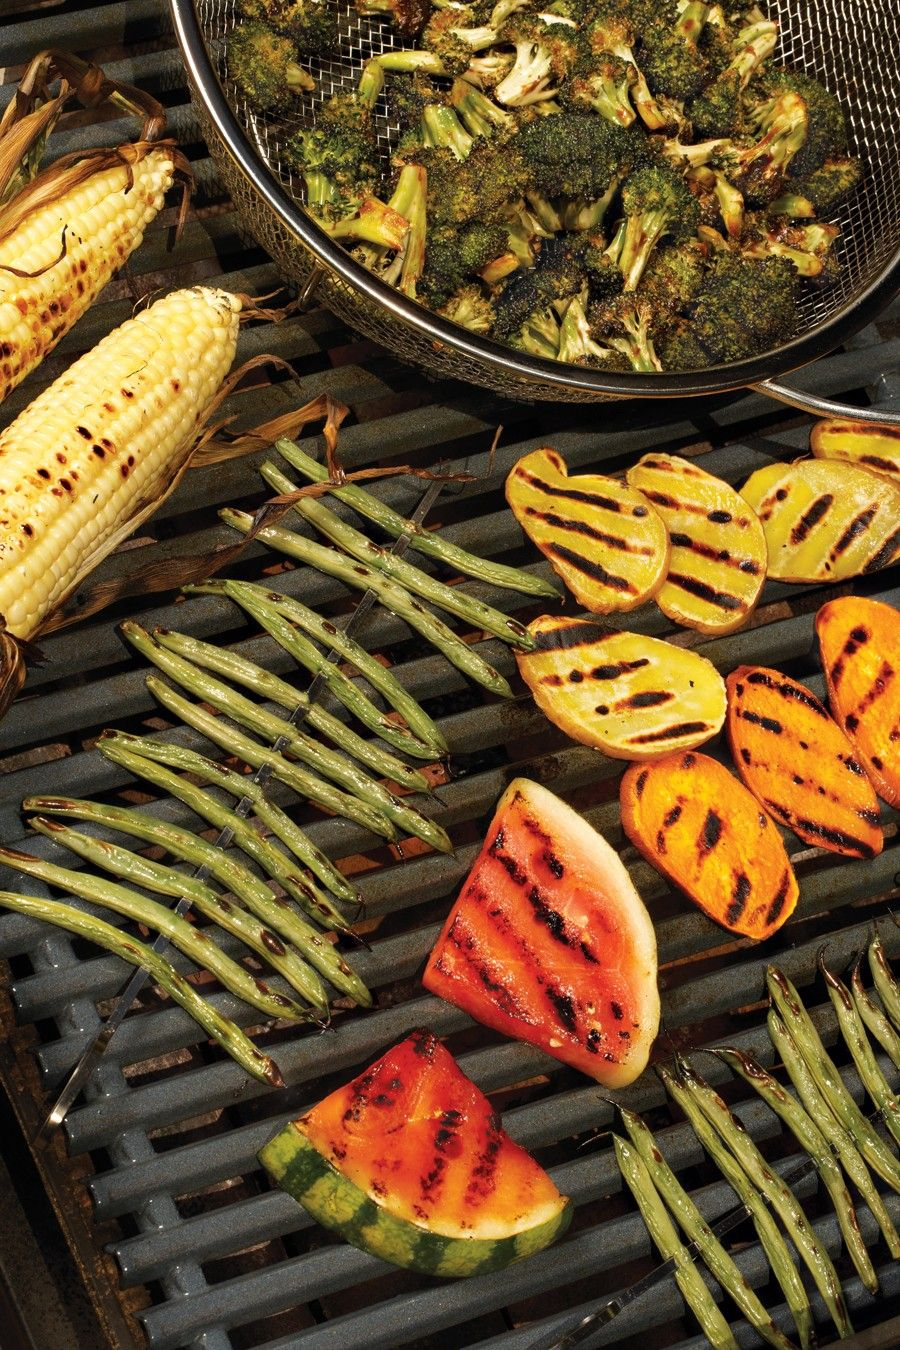 20 Ways To Grill Fruits Vegetarian Grilling Recipes Grilled Fruit Vegetarian Grilling